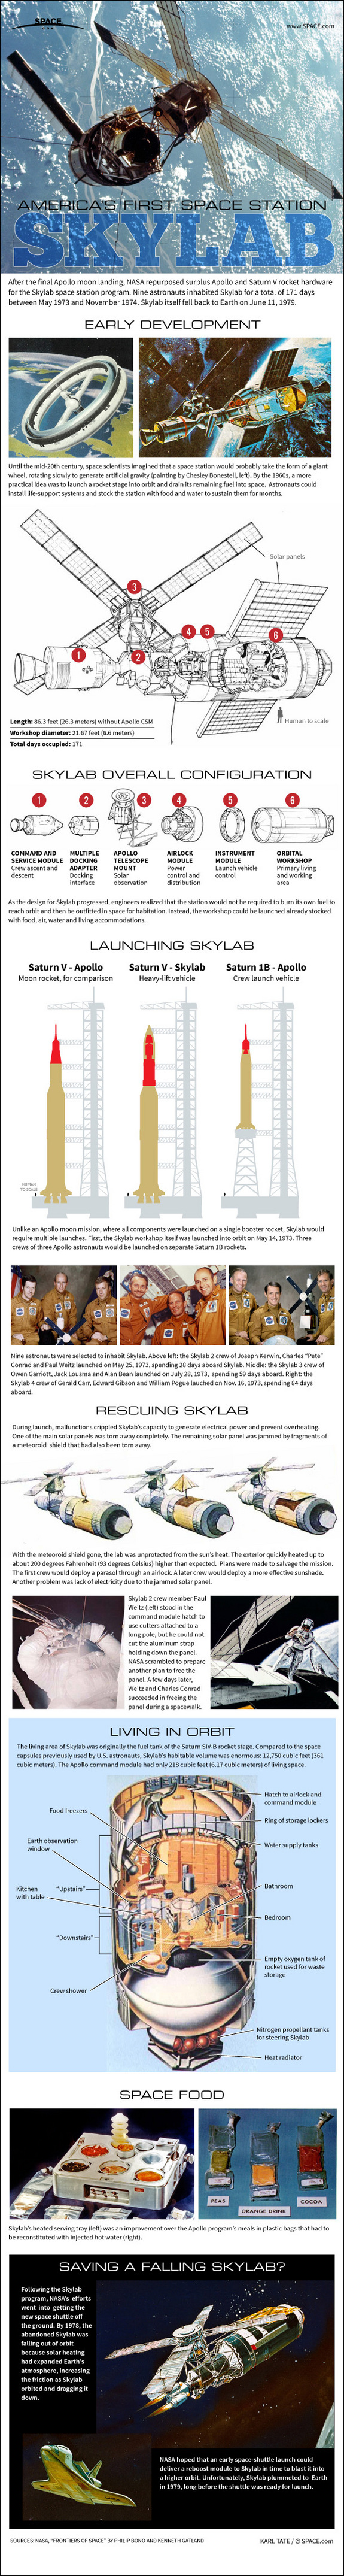 First American Space Station - Skylab space,NASA,infographic